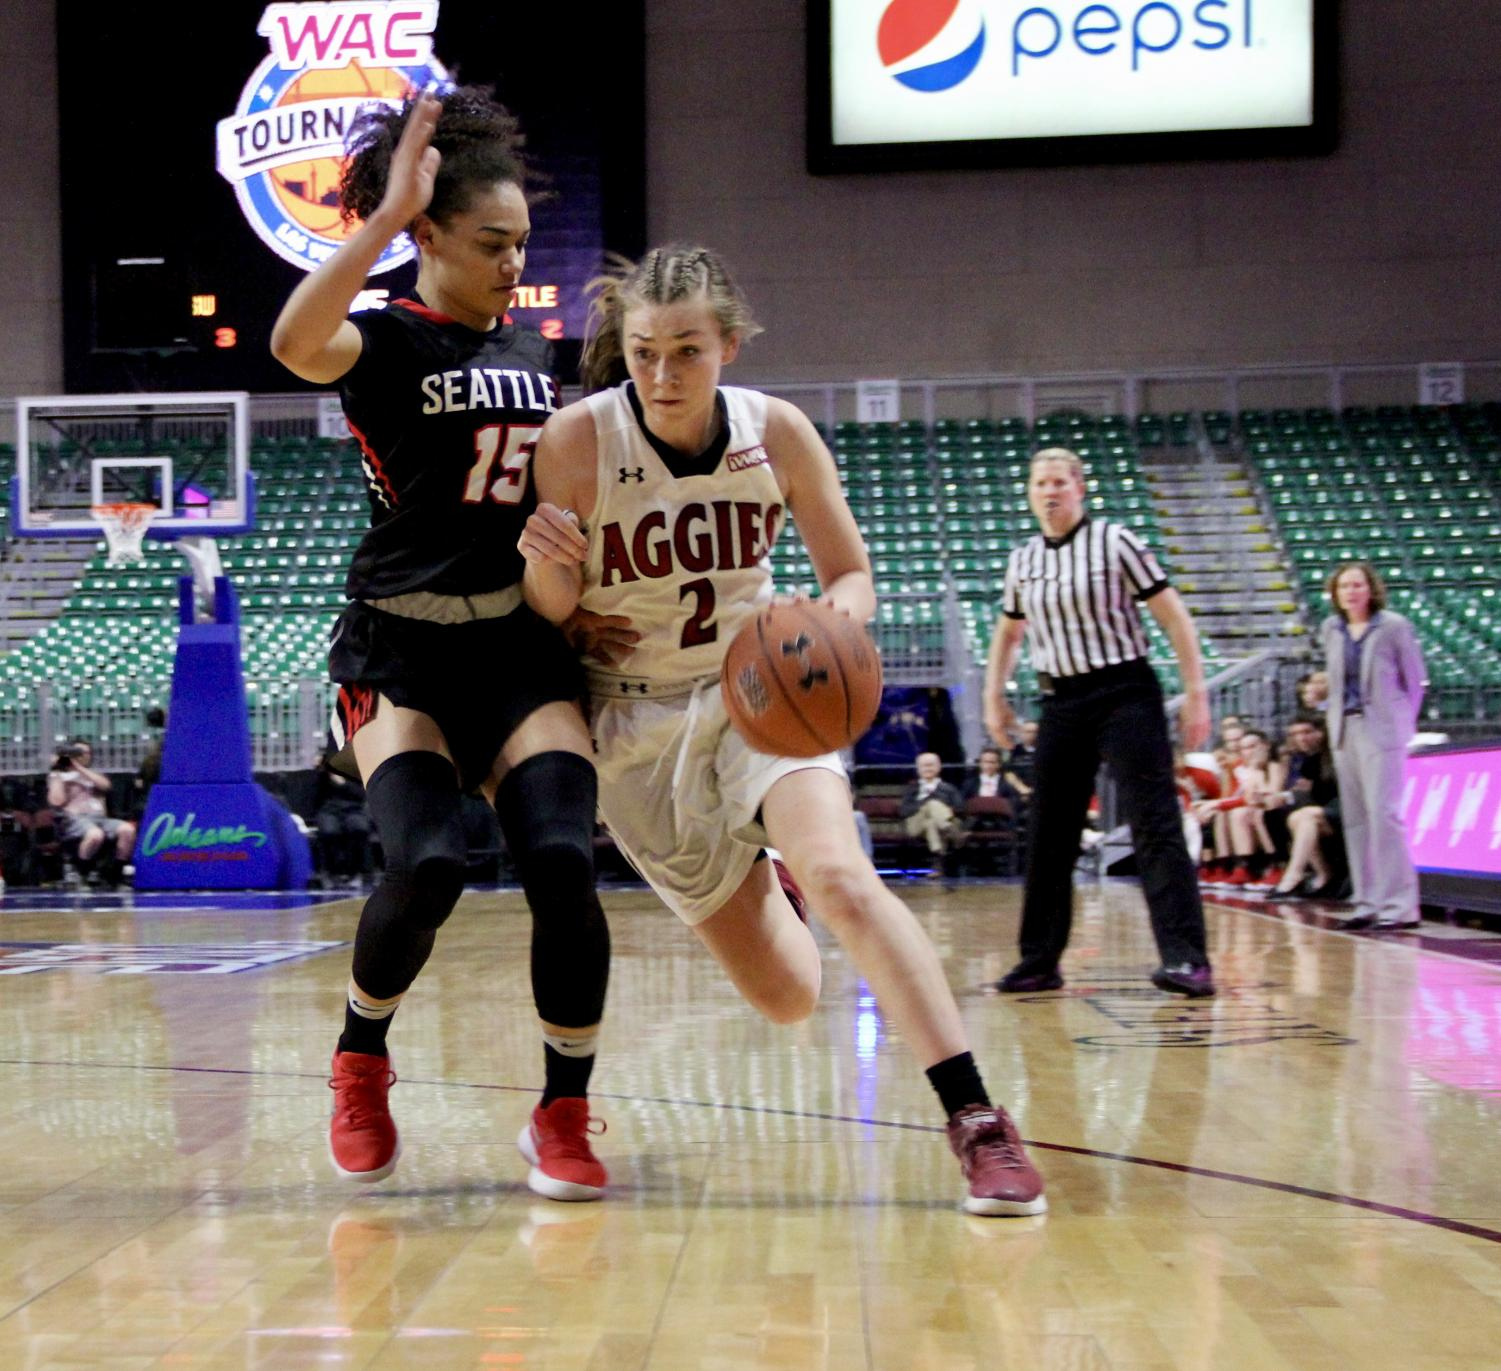 NMSU's Brooke Salas slashes to the basket Friday night inside the Orleans Arena during the  WAC semifinals. Salas and her squad could not handle the high power shooting of Seattle U, losing the game 84-61.